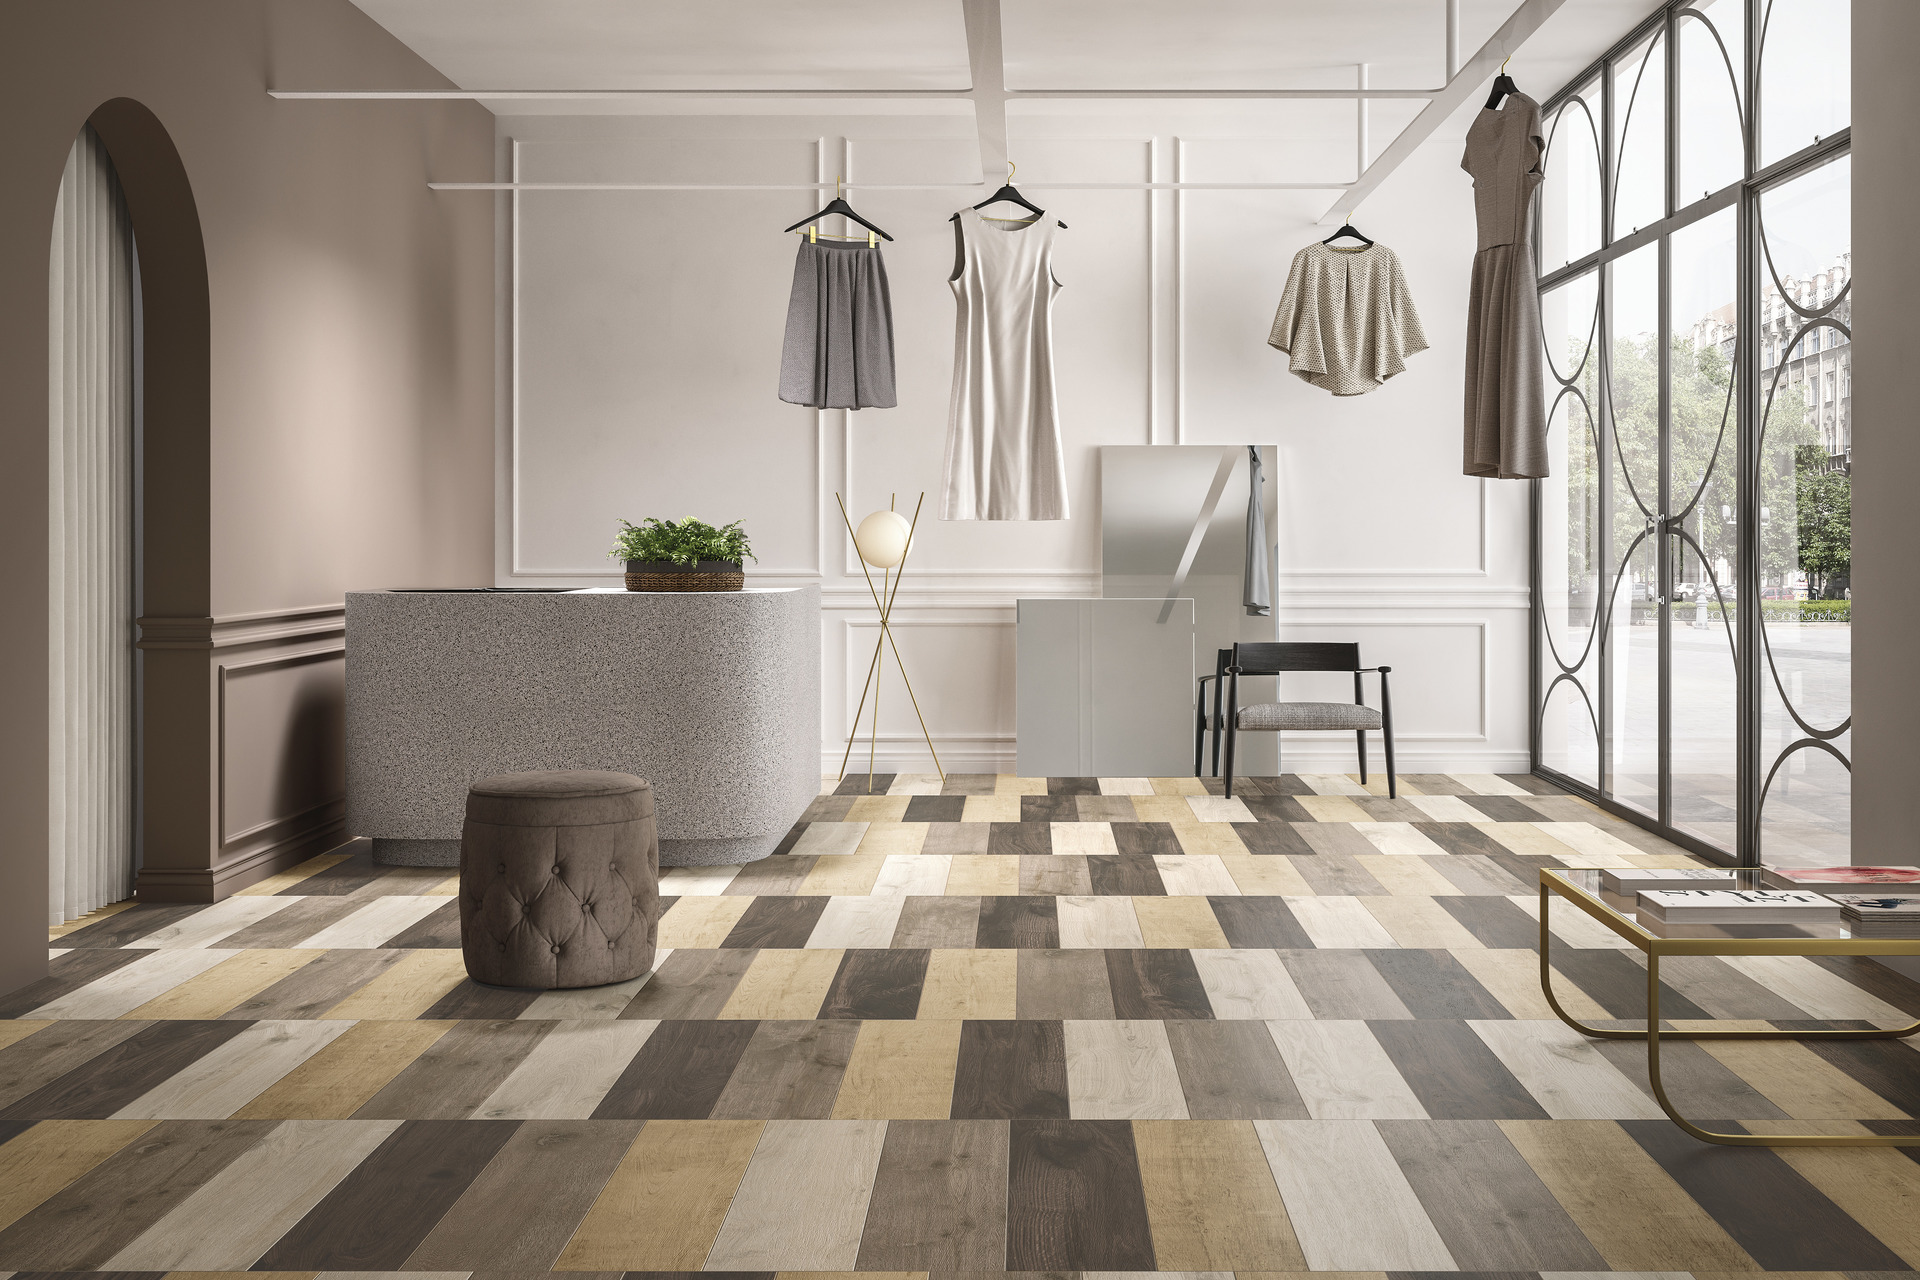 Wood Effect Porcelain Tiles - Bois Urbain